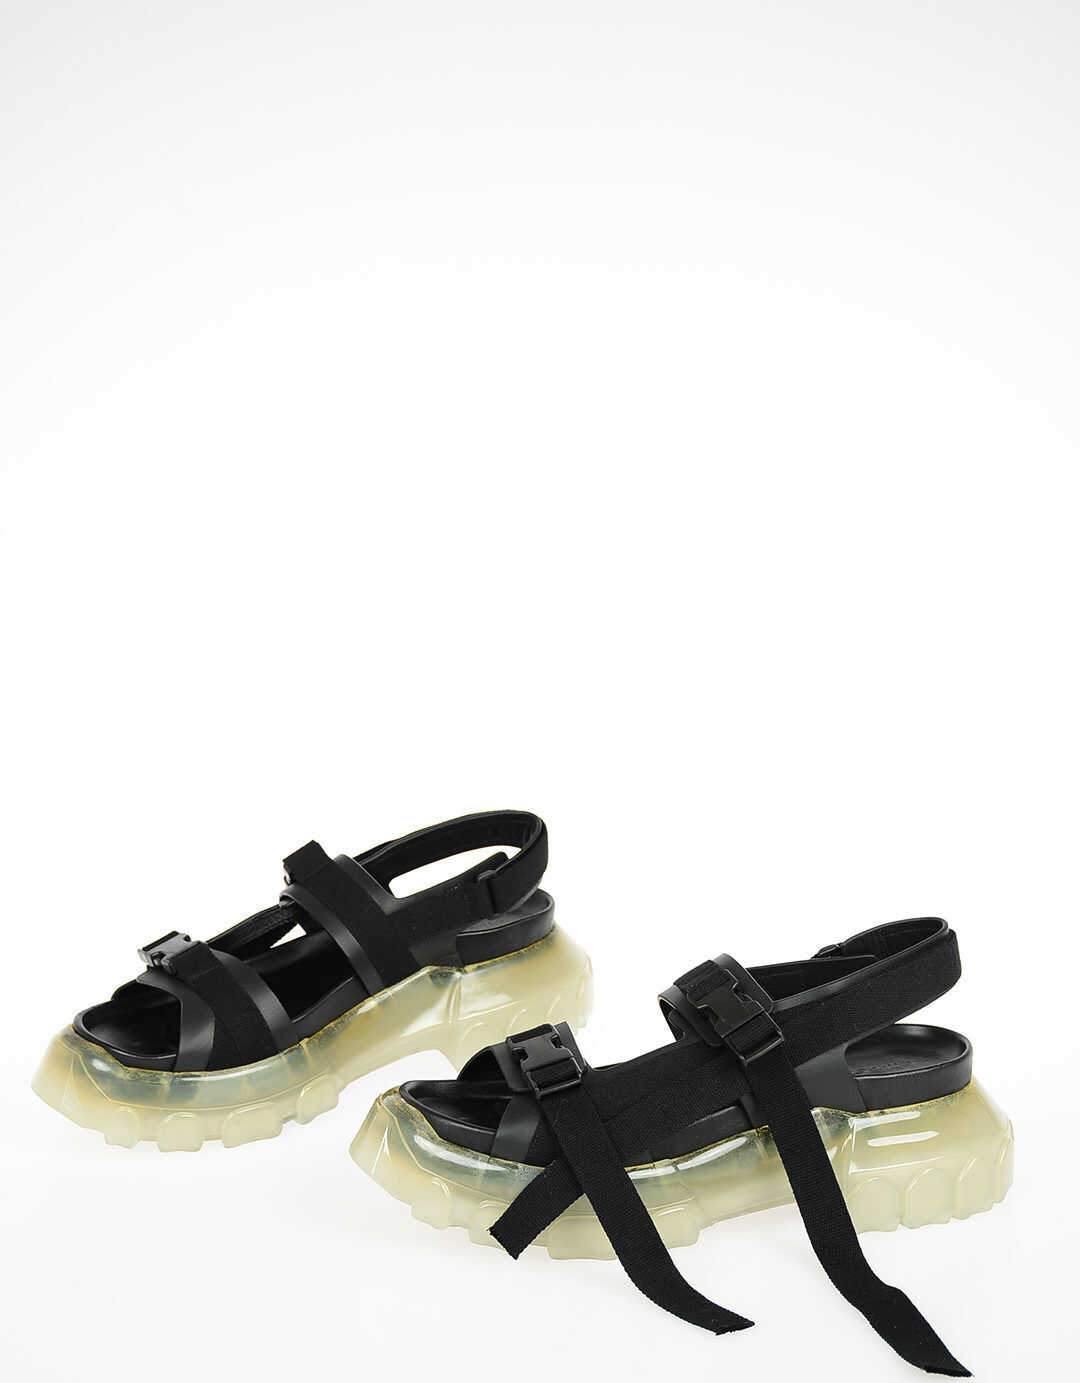 Rick Owens Leather TRACTOR Sandals BLACK